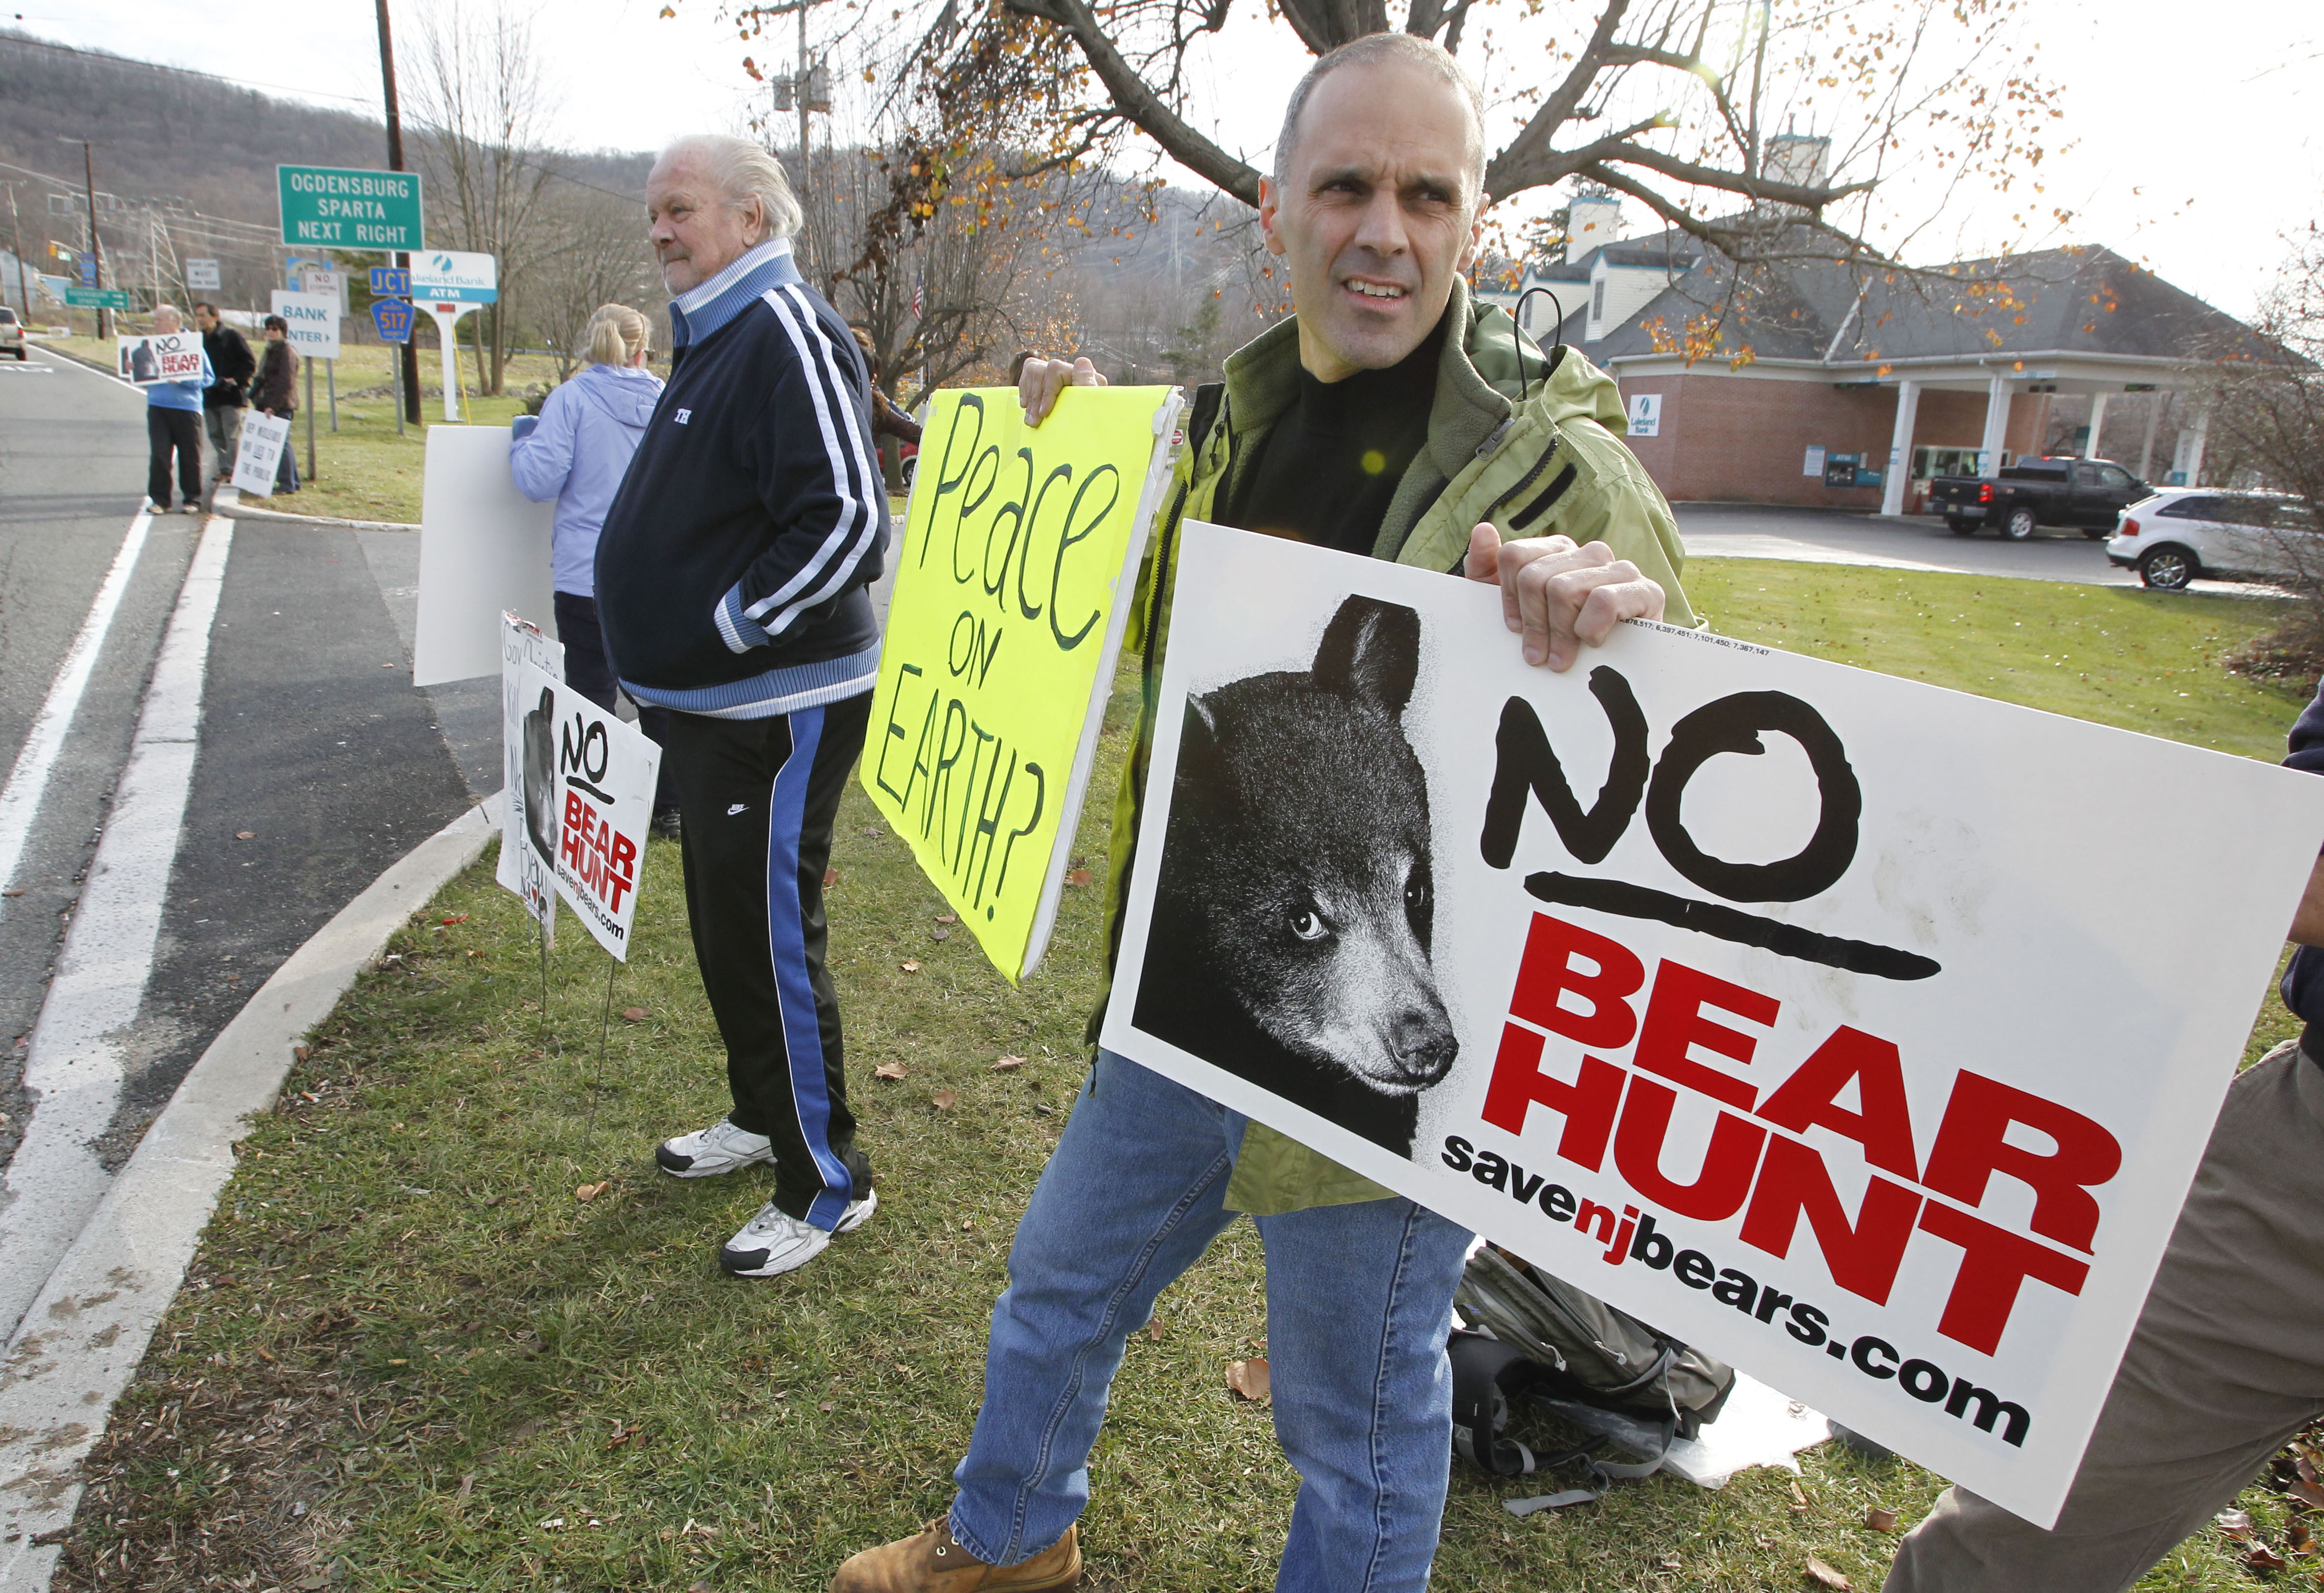 A recent Pants on Fire ruling about hunting in New Jersey sparked angry responses from some animal activists. Pictured above are other activists protesting the state's bear hunt.